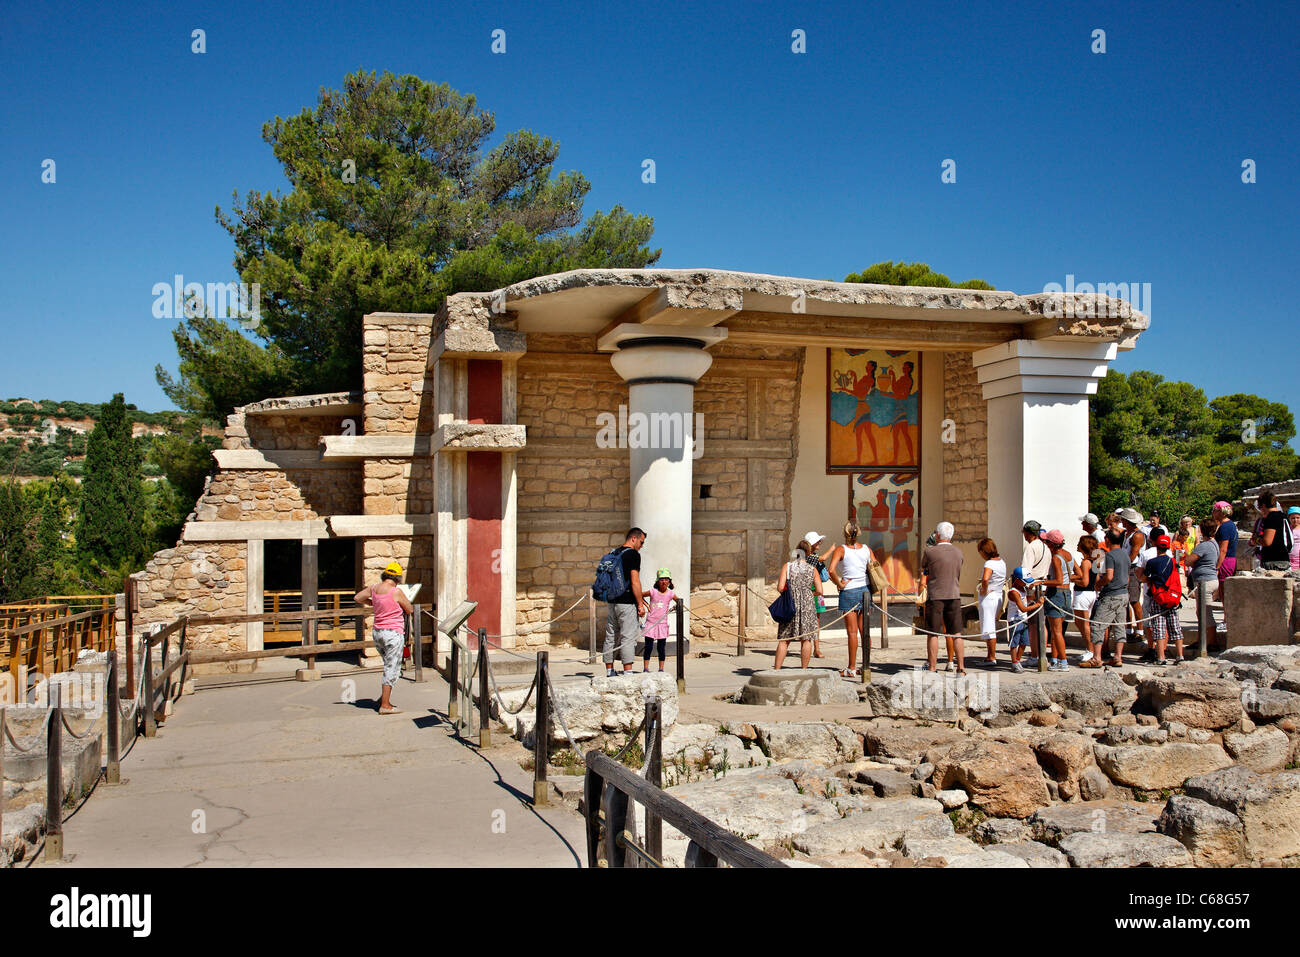 A group of tourists watching the 'Procession' fresco at the Minoan Palace of Knossos - Stock Image